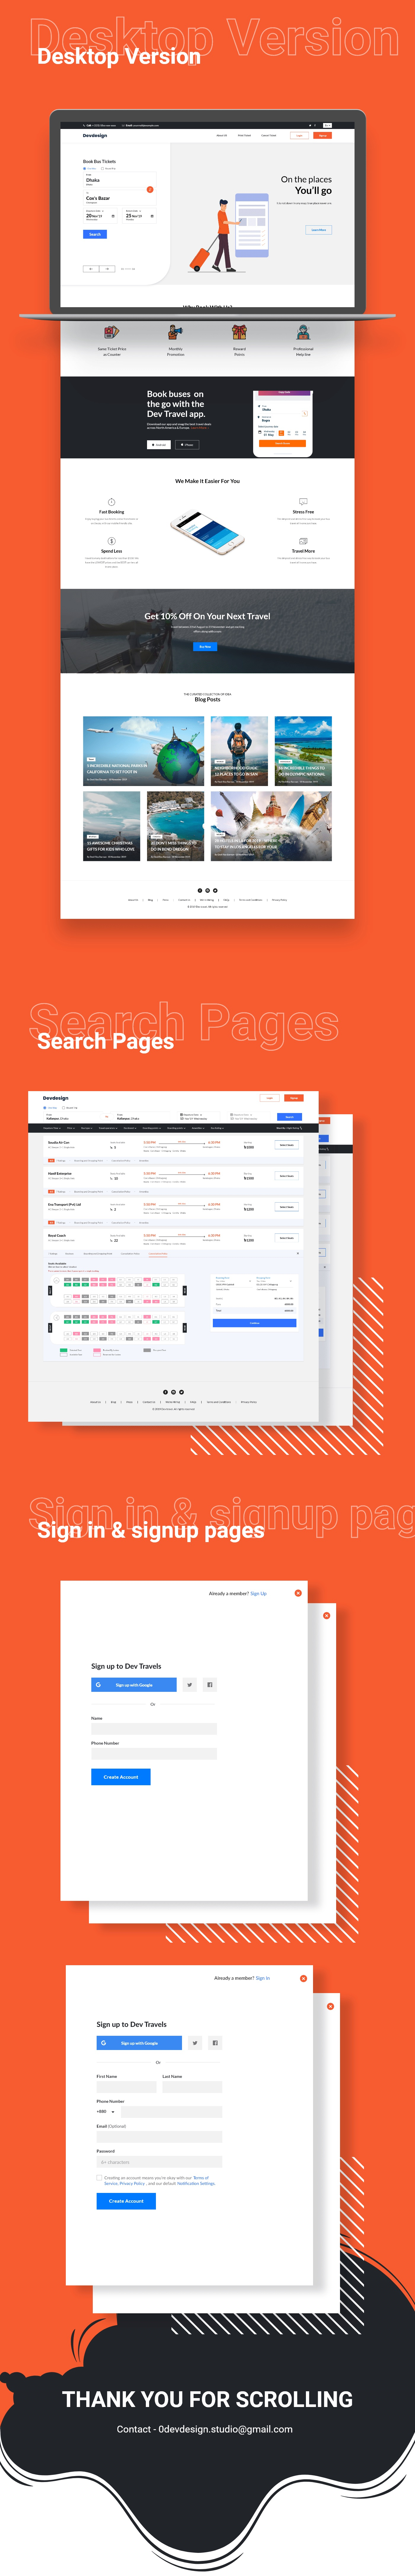 Create Ticket Bus Web Template for Xd